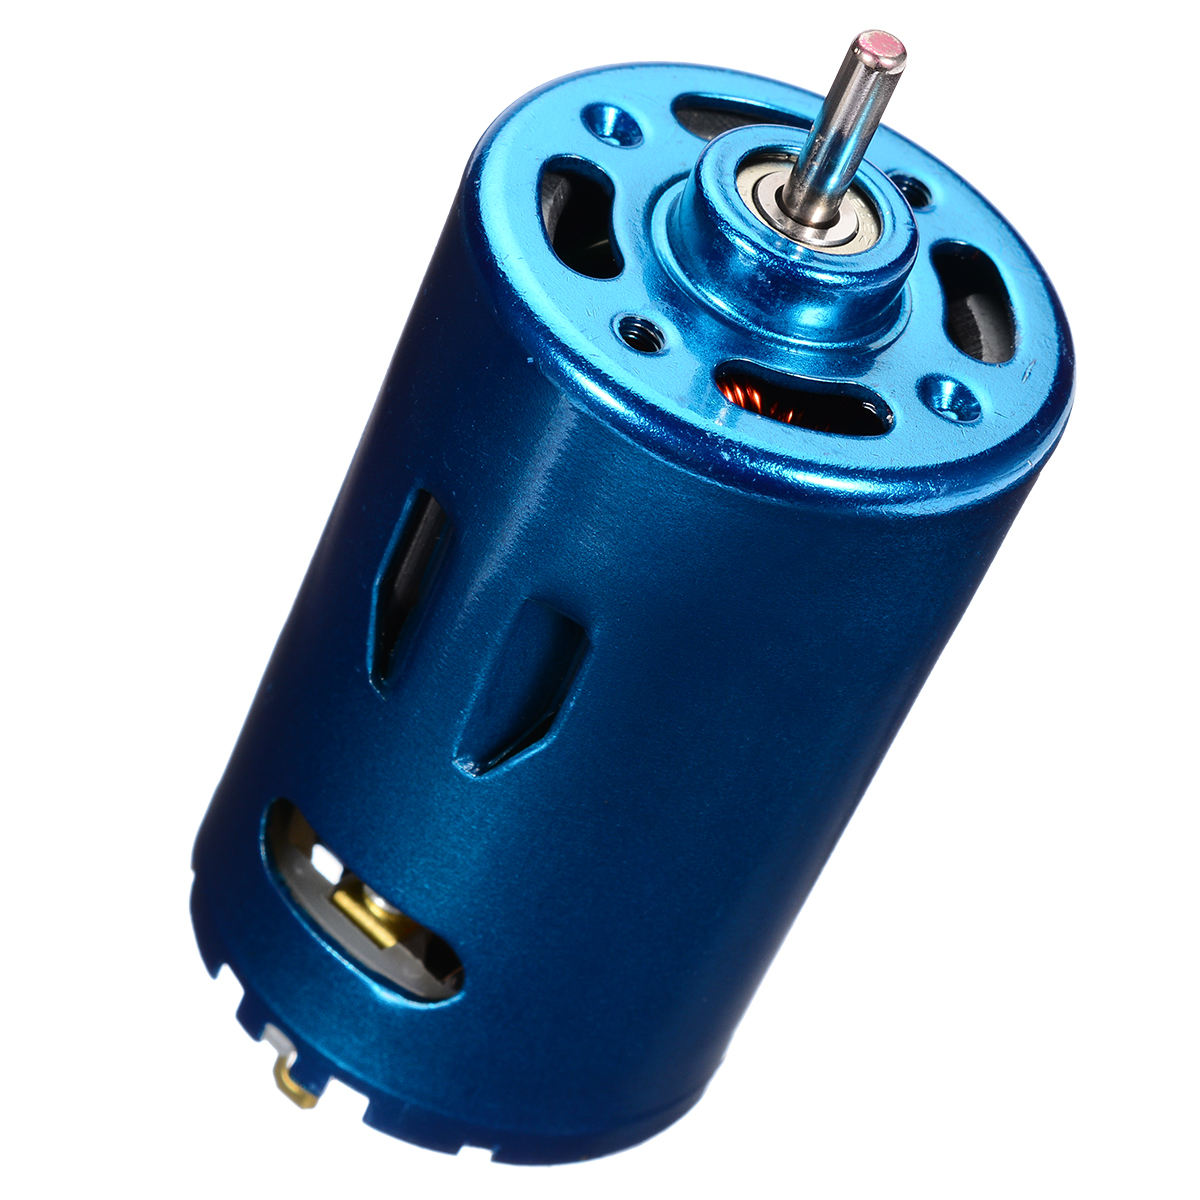 DC 12V 24V 30000RPM RS-550 Motor Electric Tool High Speed Large Torque DIY RC Car Boat Model image